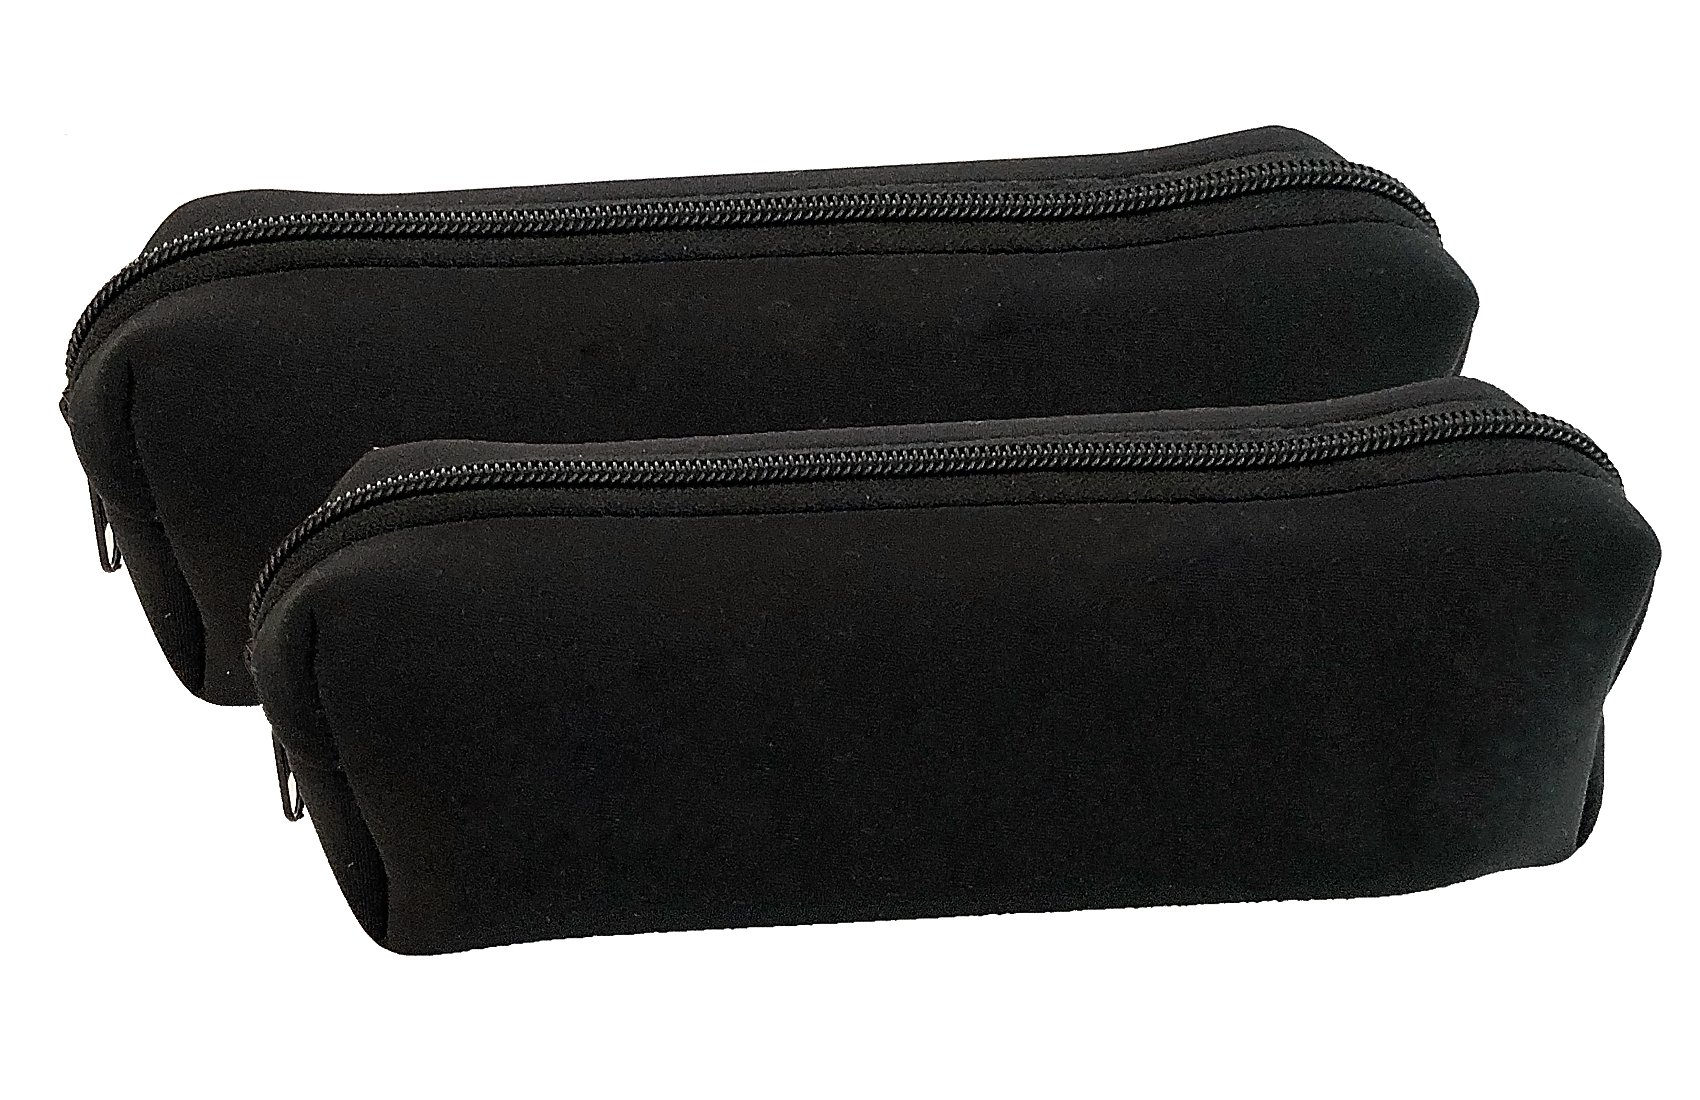 Large Zippered Pencil Case or Pen Pouch for Kids or Adults. Utility Case for Pencils, Pens, School Supplies, Makeup, or Epi-pens. an All Purpose Travel or Accessory Holder. Set of 2, Black